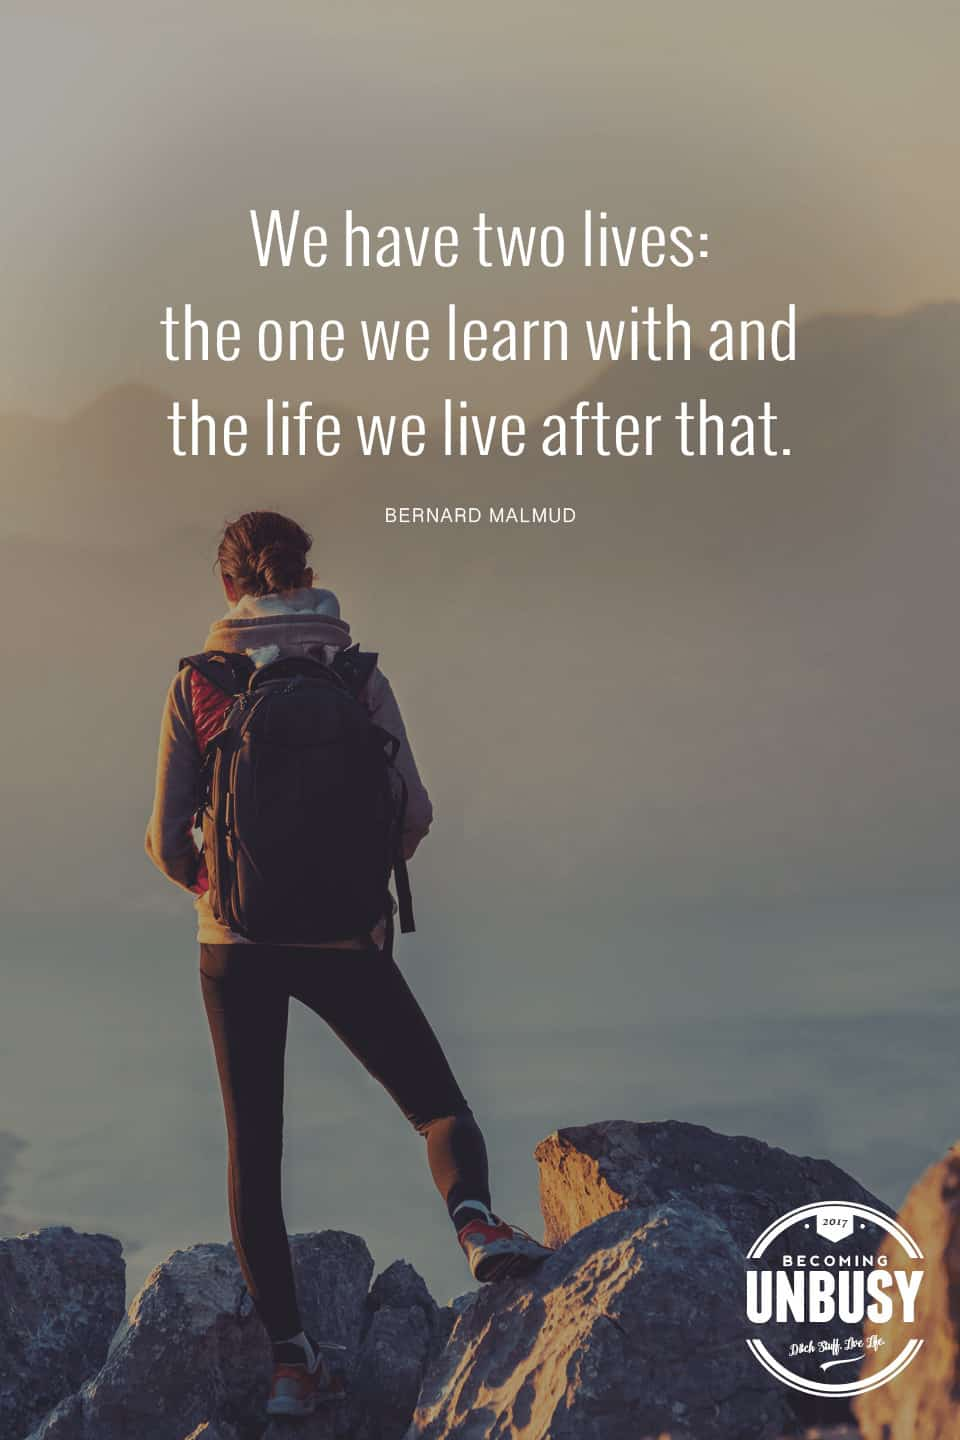 We have two lives: the one we learn with and the one we live after that. -- 10 inspirational quotes about life that will help you focus on what's important #quotes #lifequotes #inspirationalquotes *Loving this collection of life quotes!